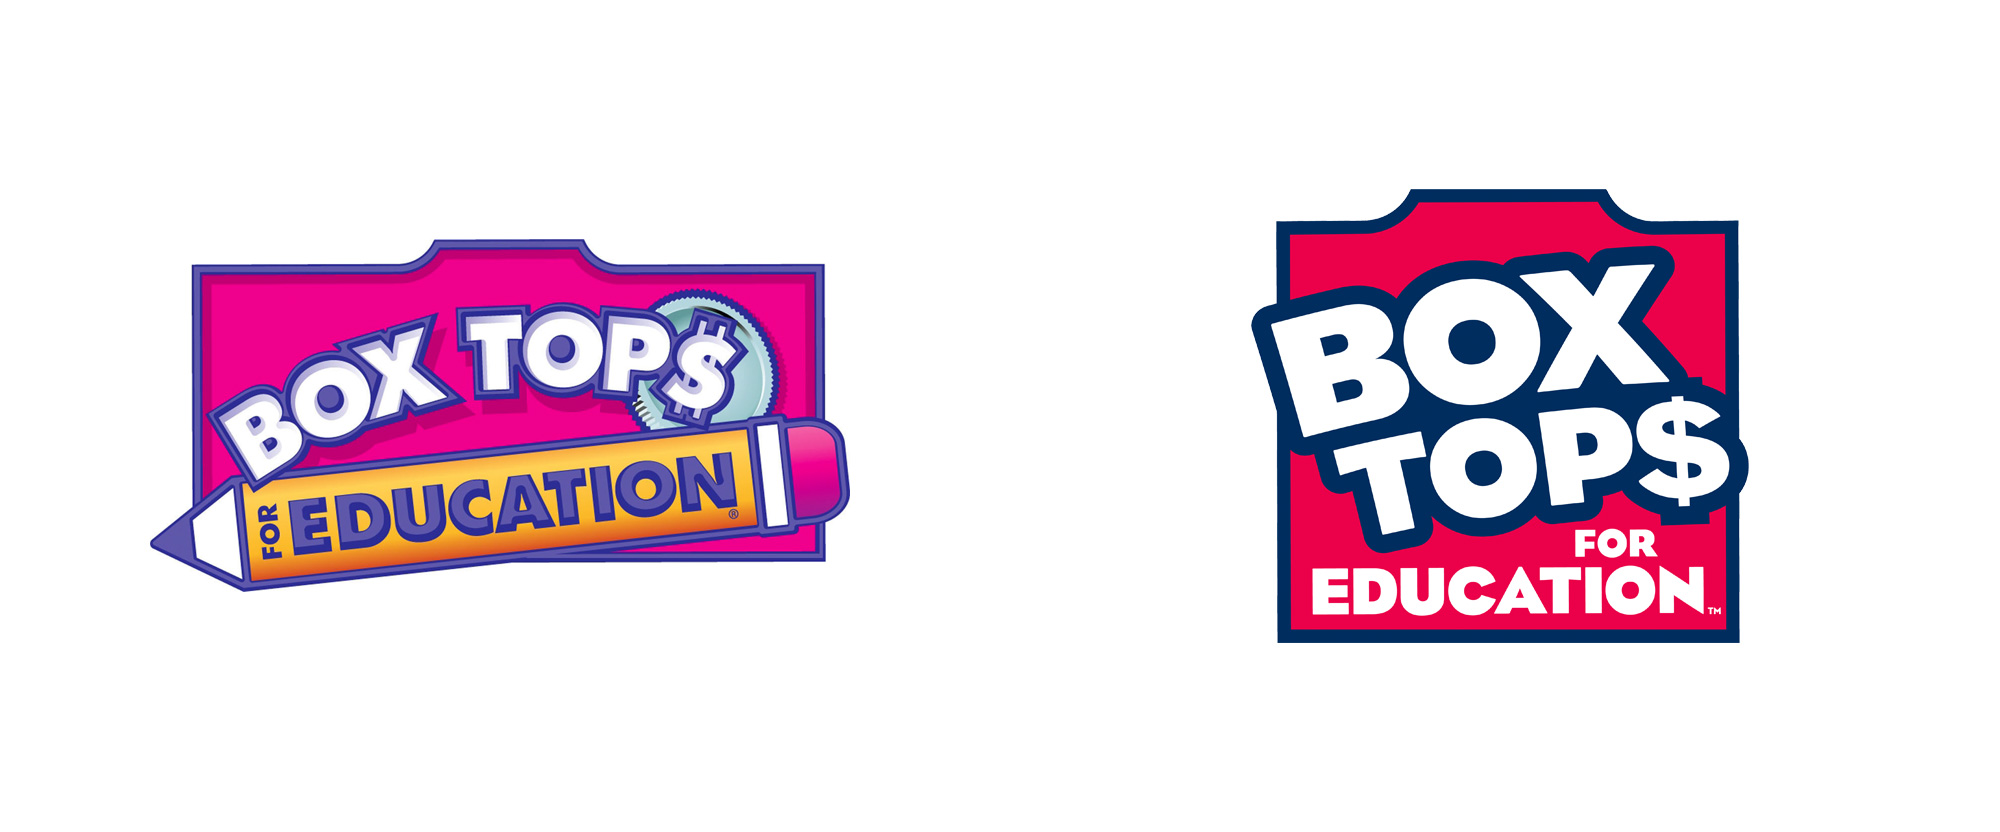 box_tops_logo_before_after.jpg